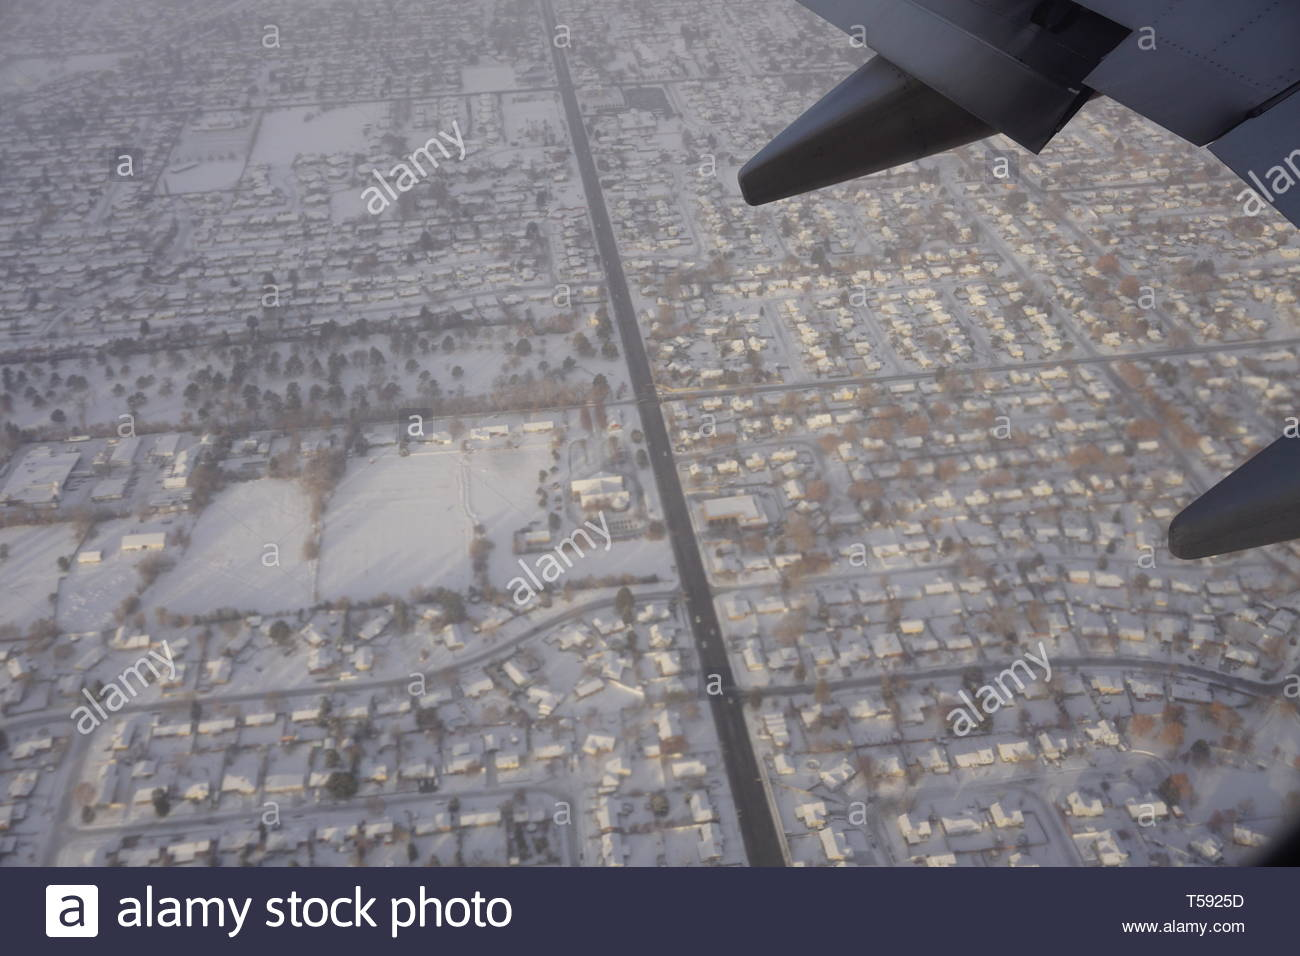 Delta airplane wing from airplane window above Salt Lake City houses covered in snow in the winter. Roads and houses from the airplane. - Stock Image